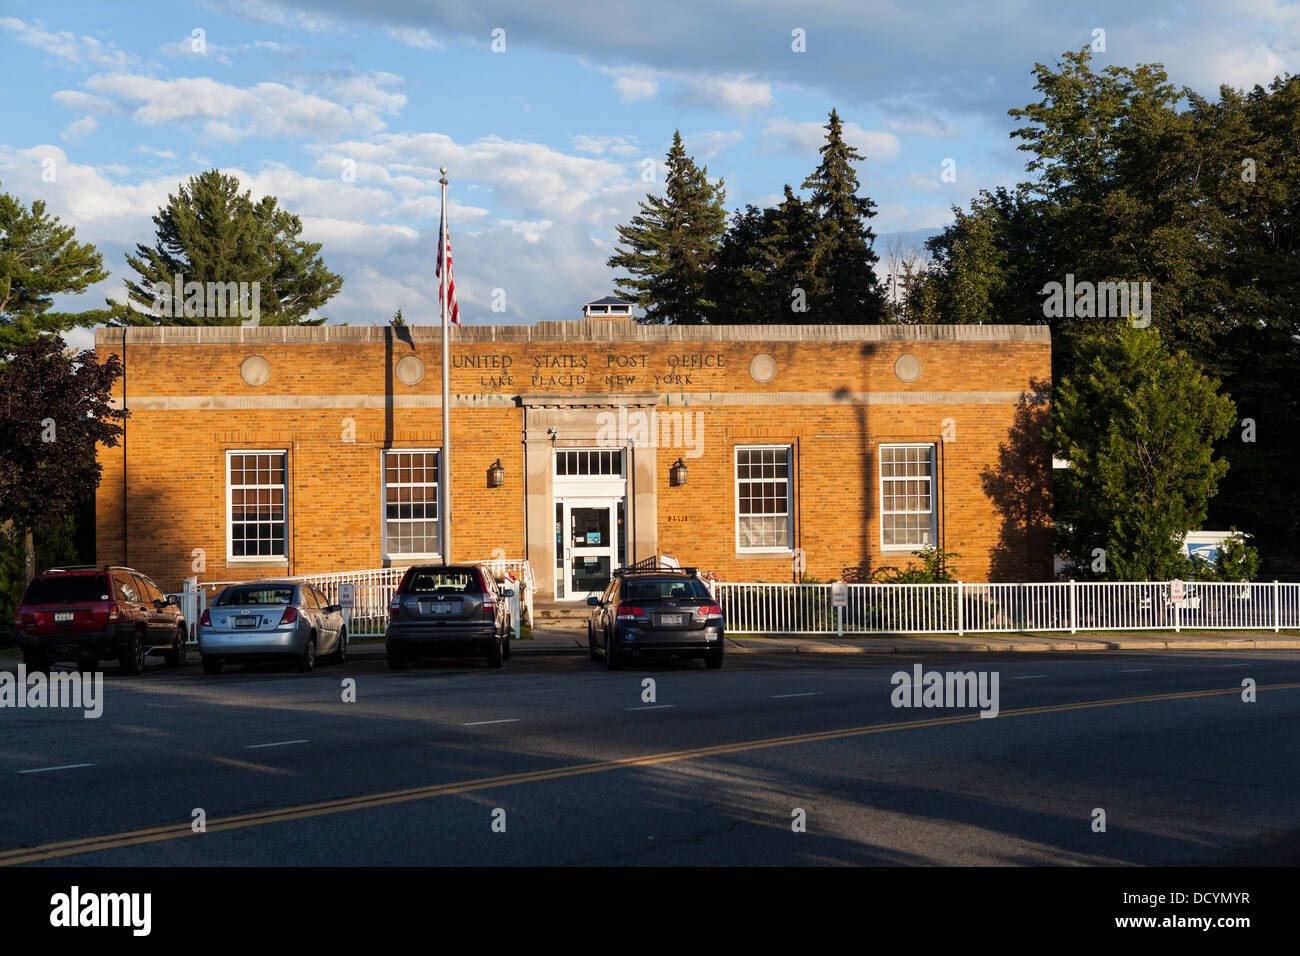 United States Postal Service office in Lake Placid - Stock Image